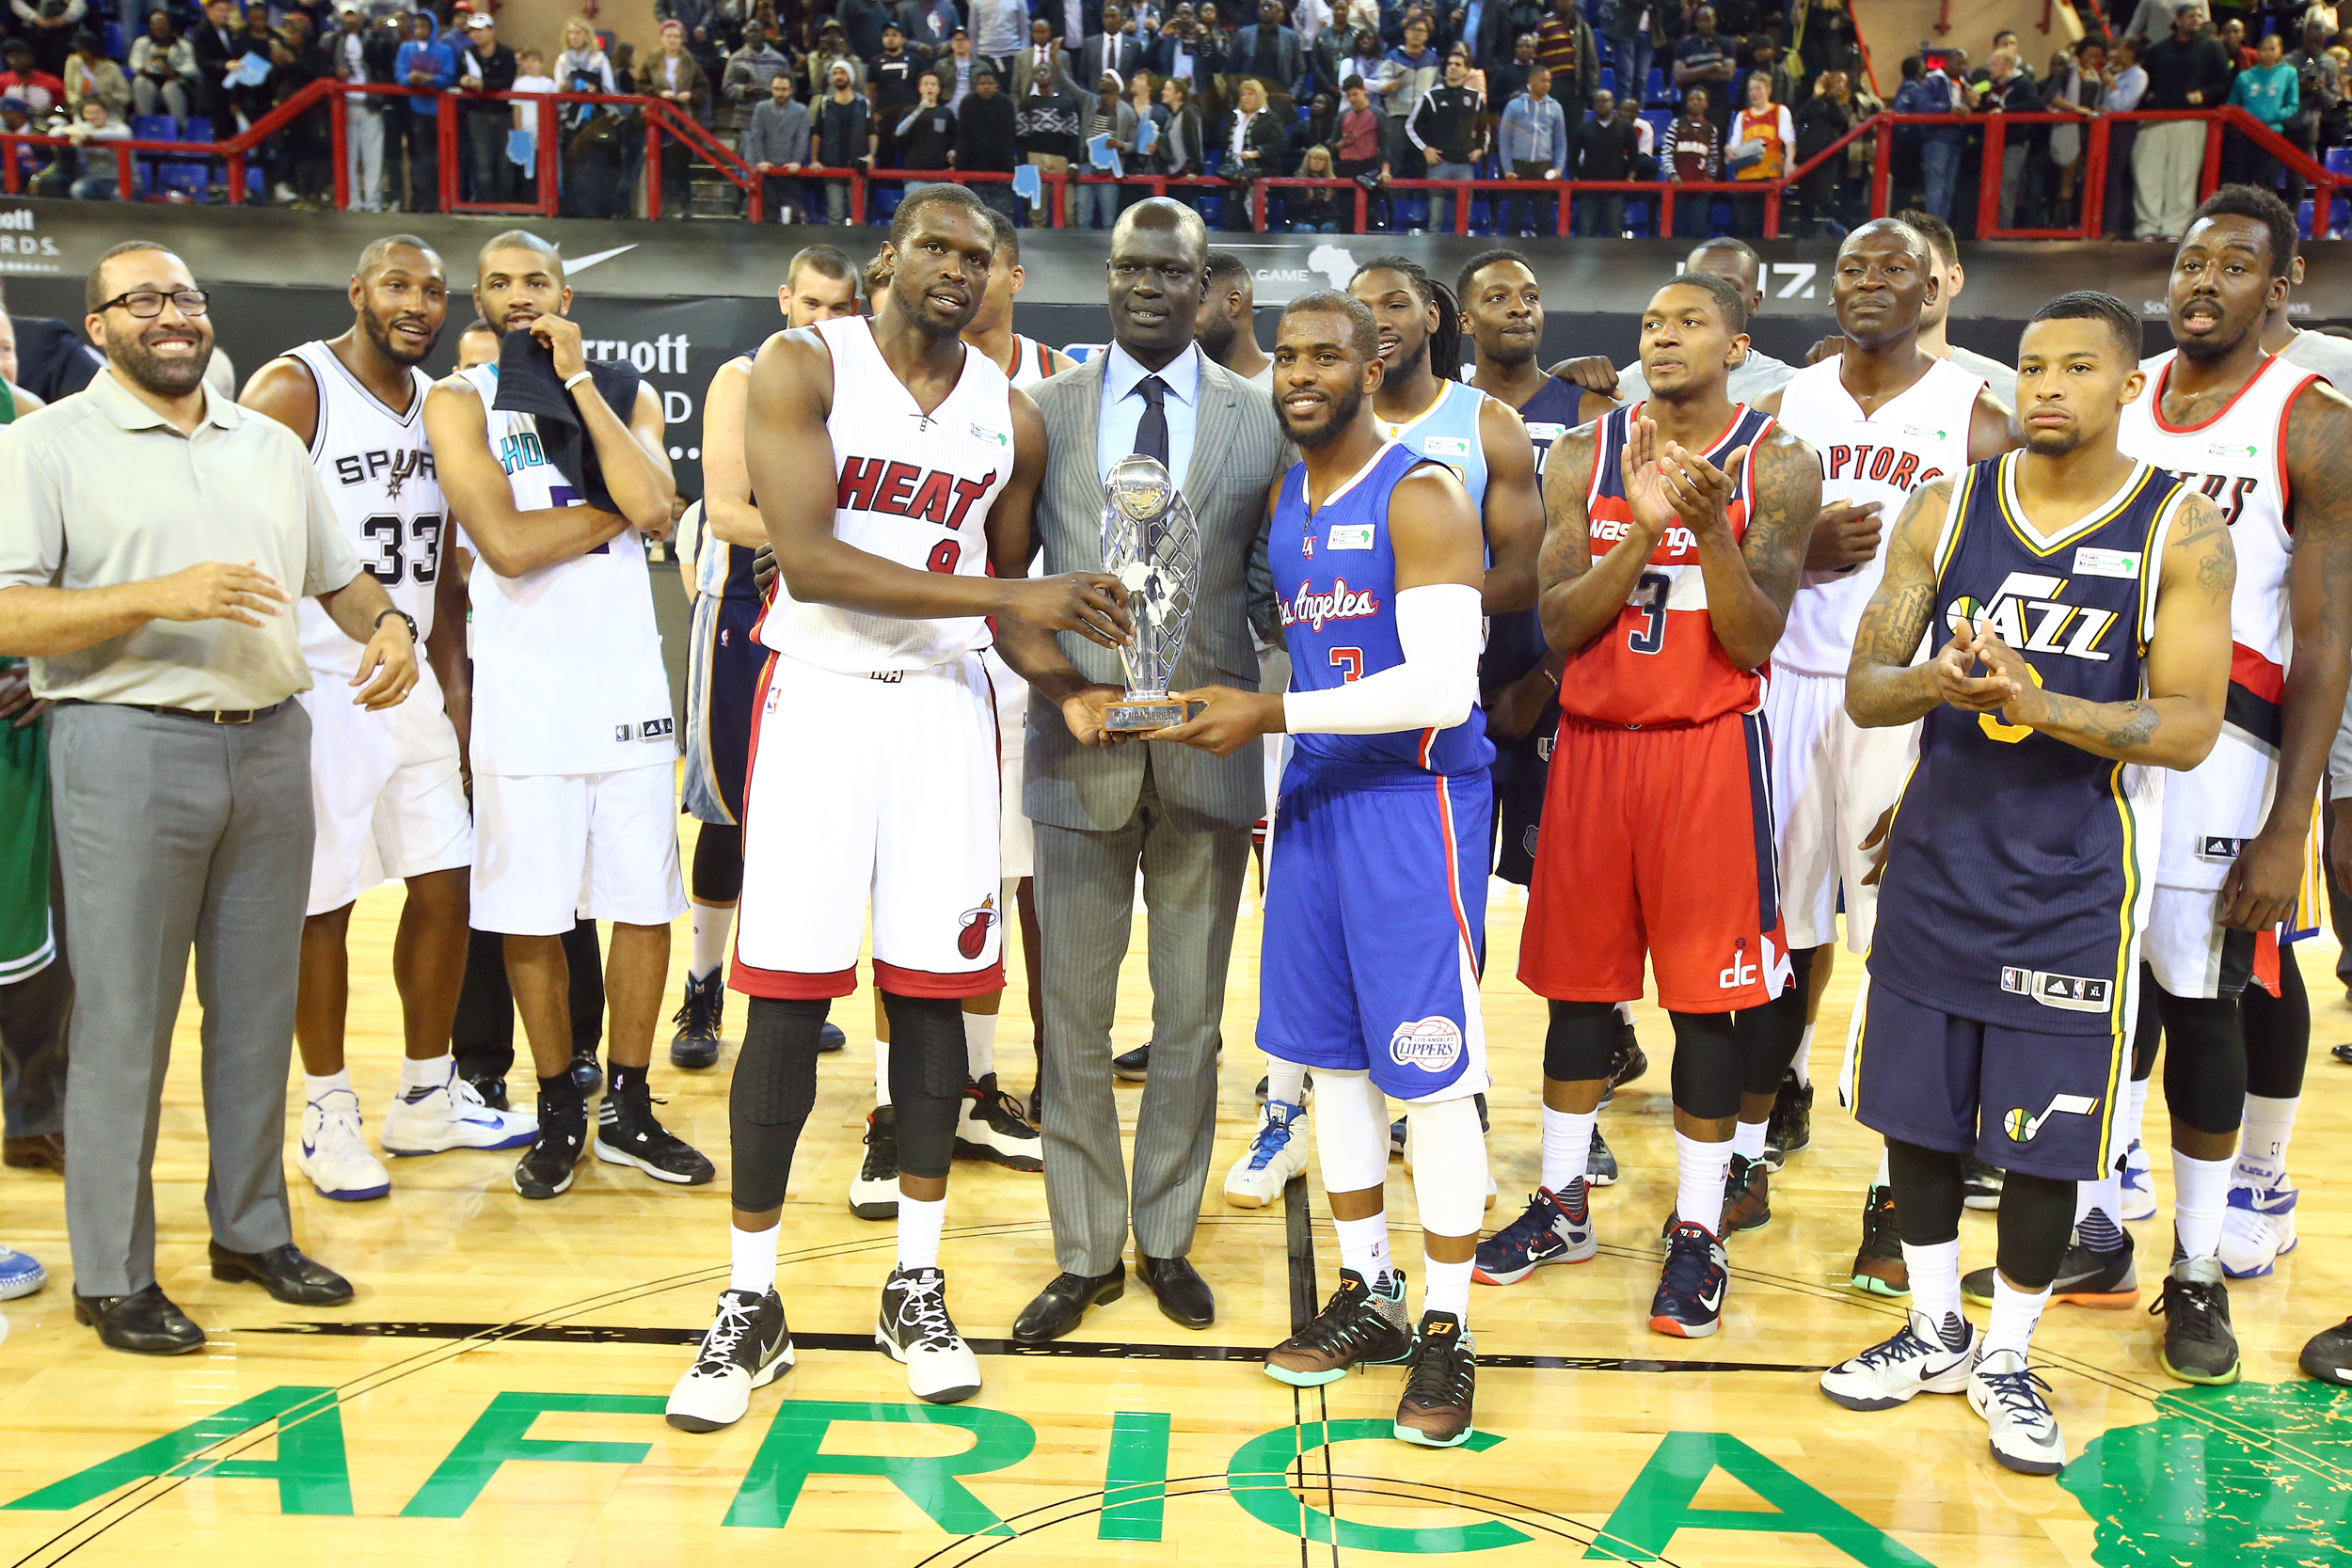 NBA Africa Vice President & Managing Director Amadou Gallo Fall presents Captain Luol Deng #9 of Team Africa and Captain Chris Paul #3 of Team World the MVP Trophy after the NBA Africa Game 2015 as part of Basketball Without Borders on August 1, 2015 at the Ellis Park Arena in Johannesburg, South Africa.